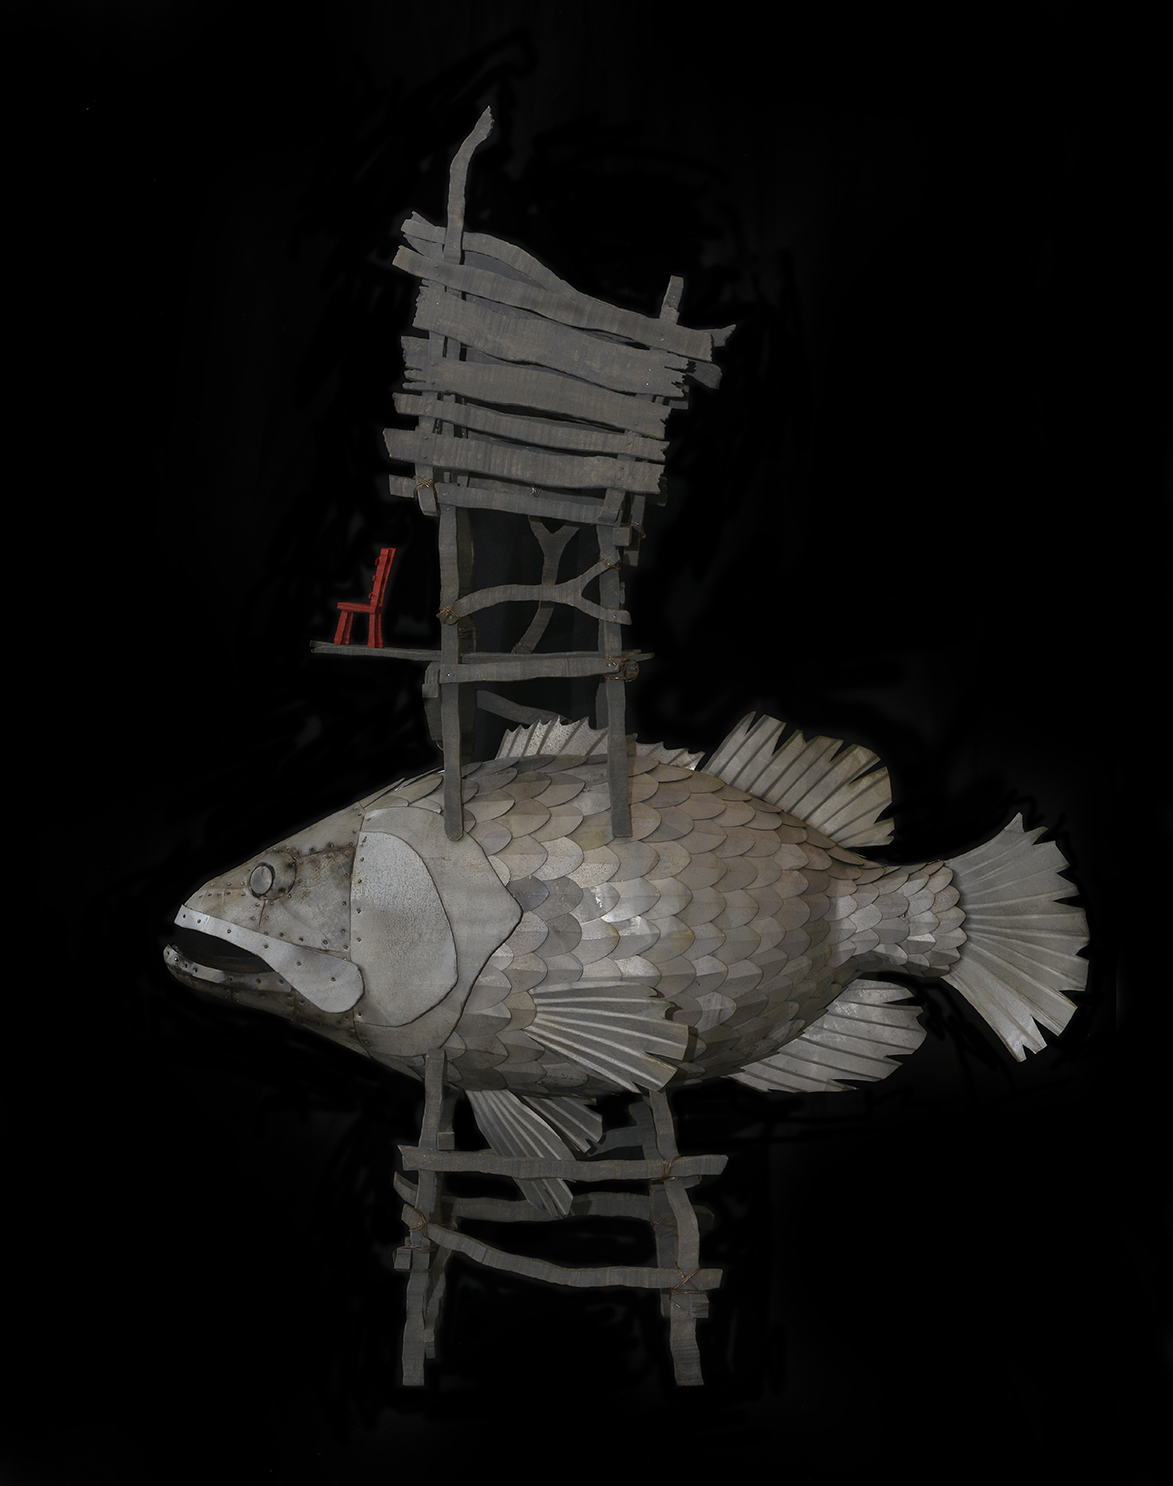 Goliath Grouper and Red Chair